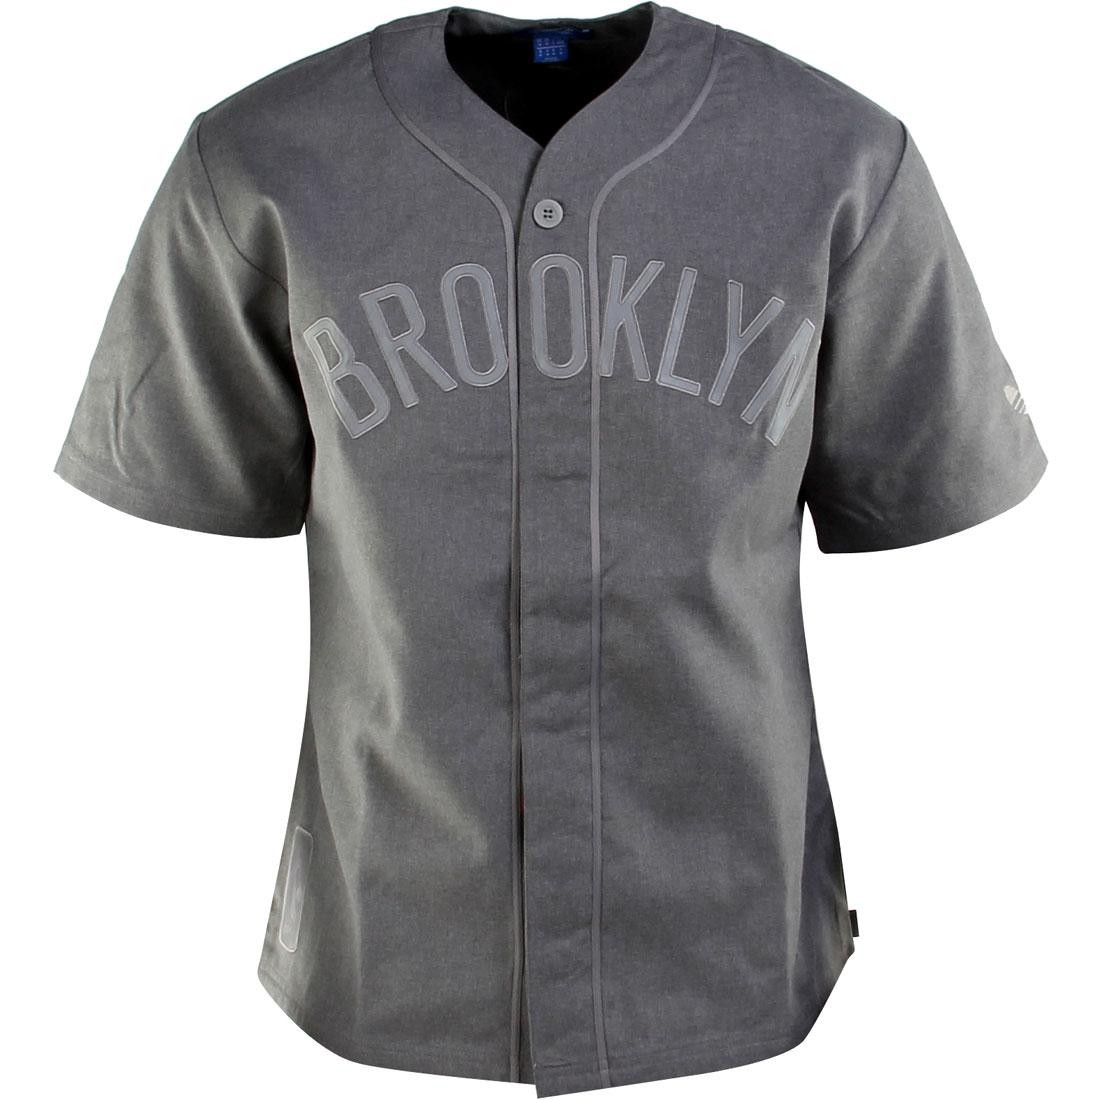 Adidas NBA Brooklyn Jersey (gray / corhtr)